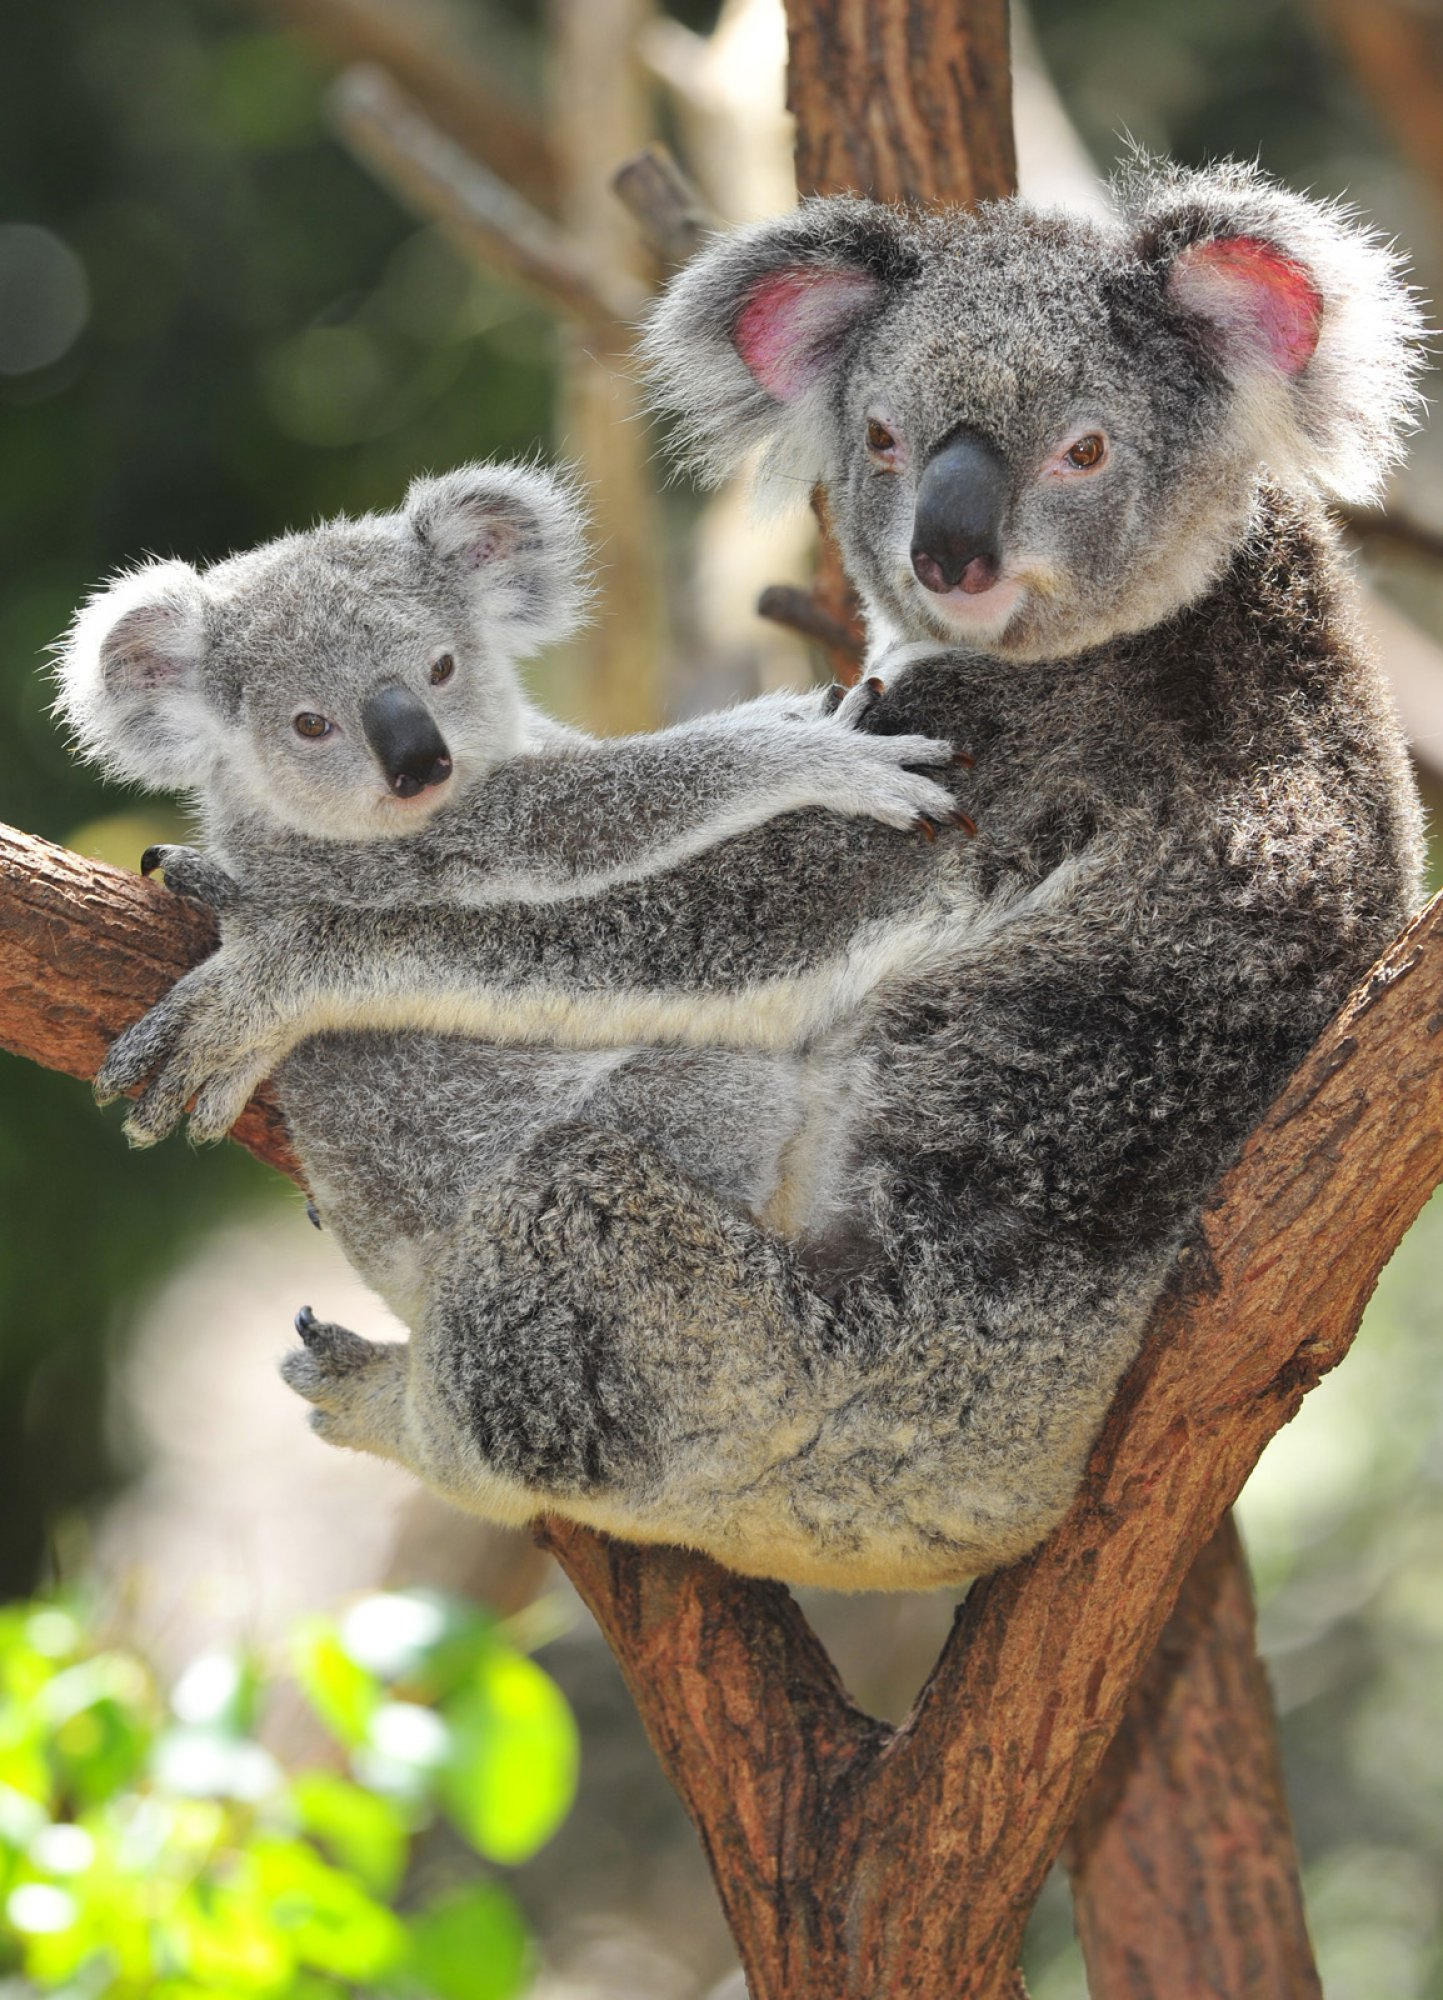 https://bubo.sk/uploads/galleries/5028/koala-dreamstime-xl-24313173.jpg